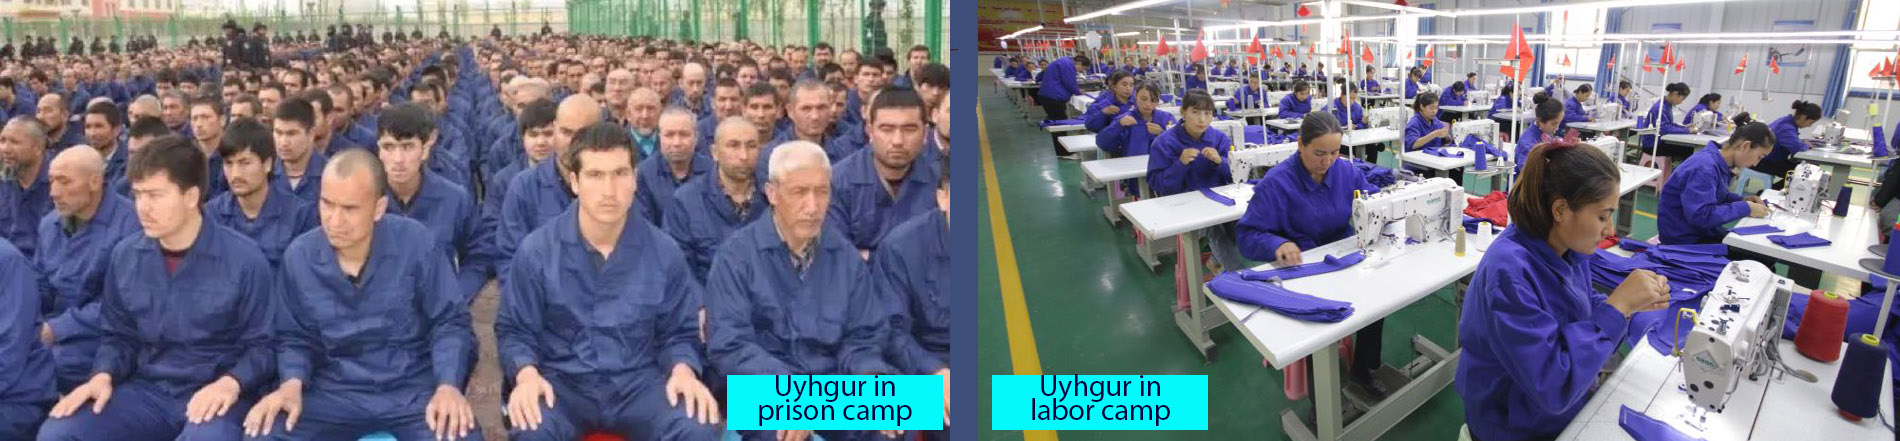 uyhgur in the camps